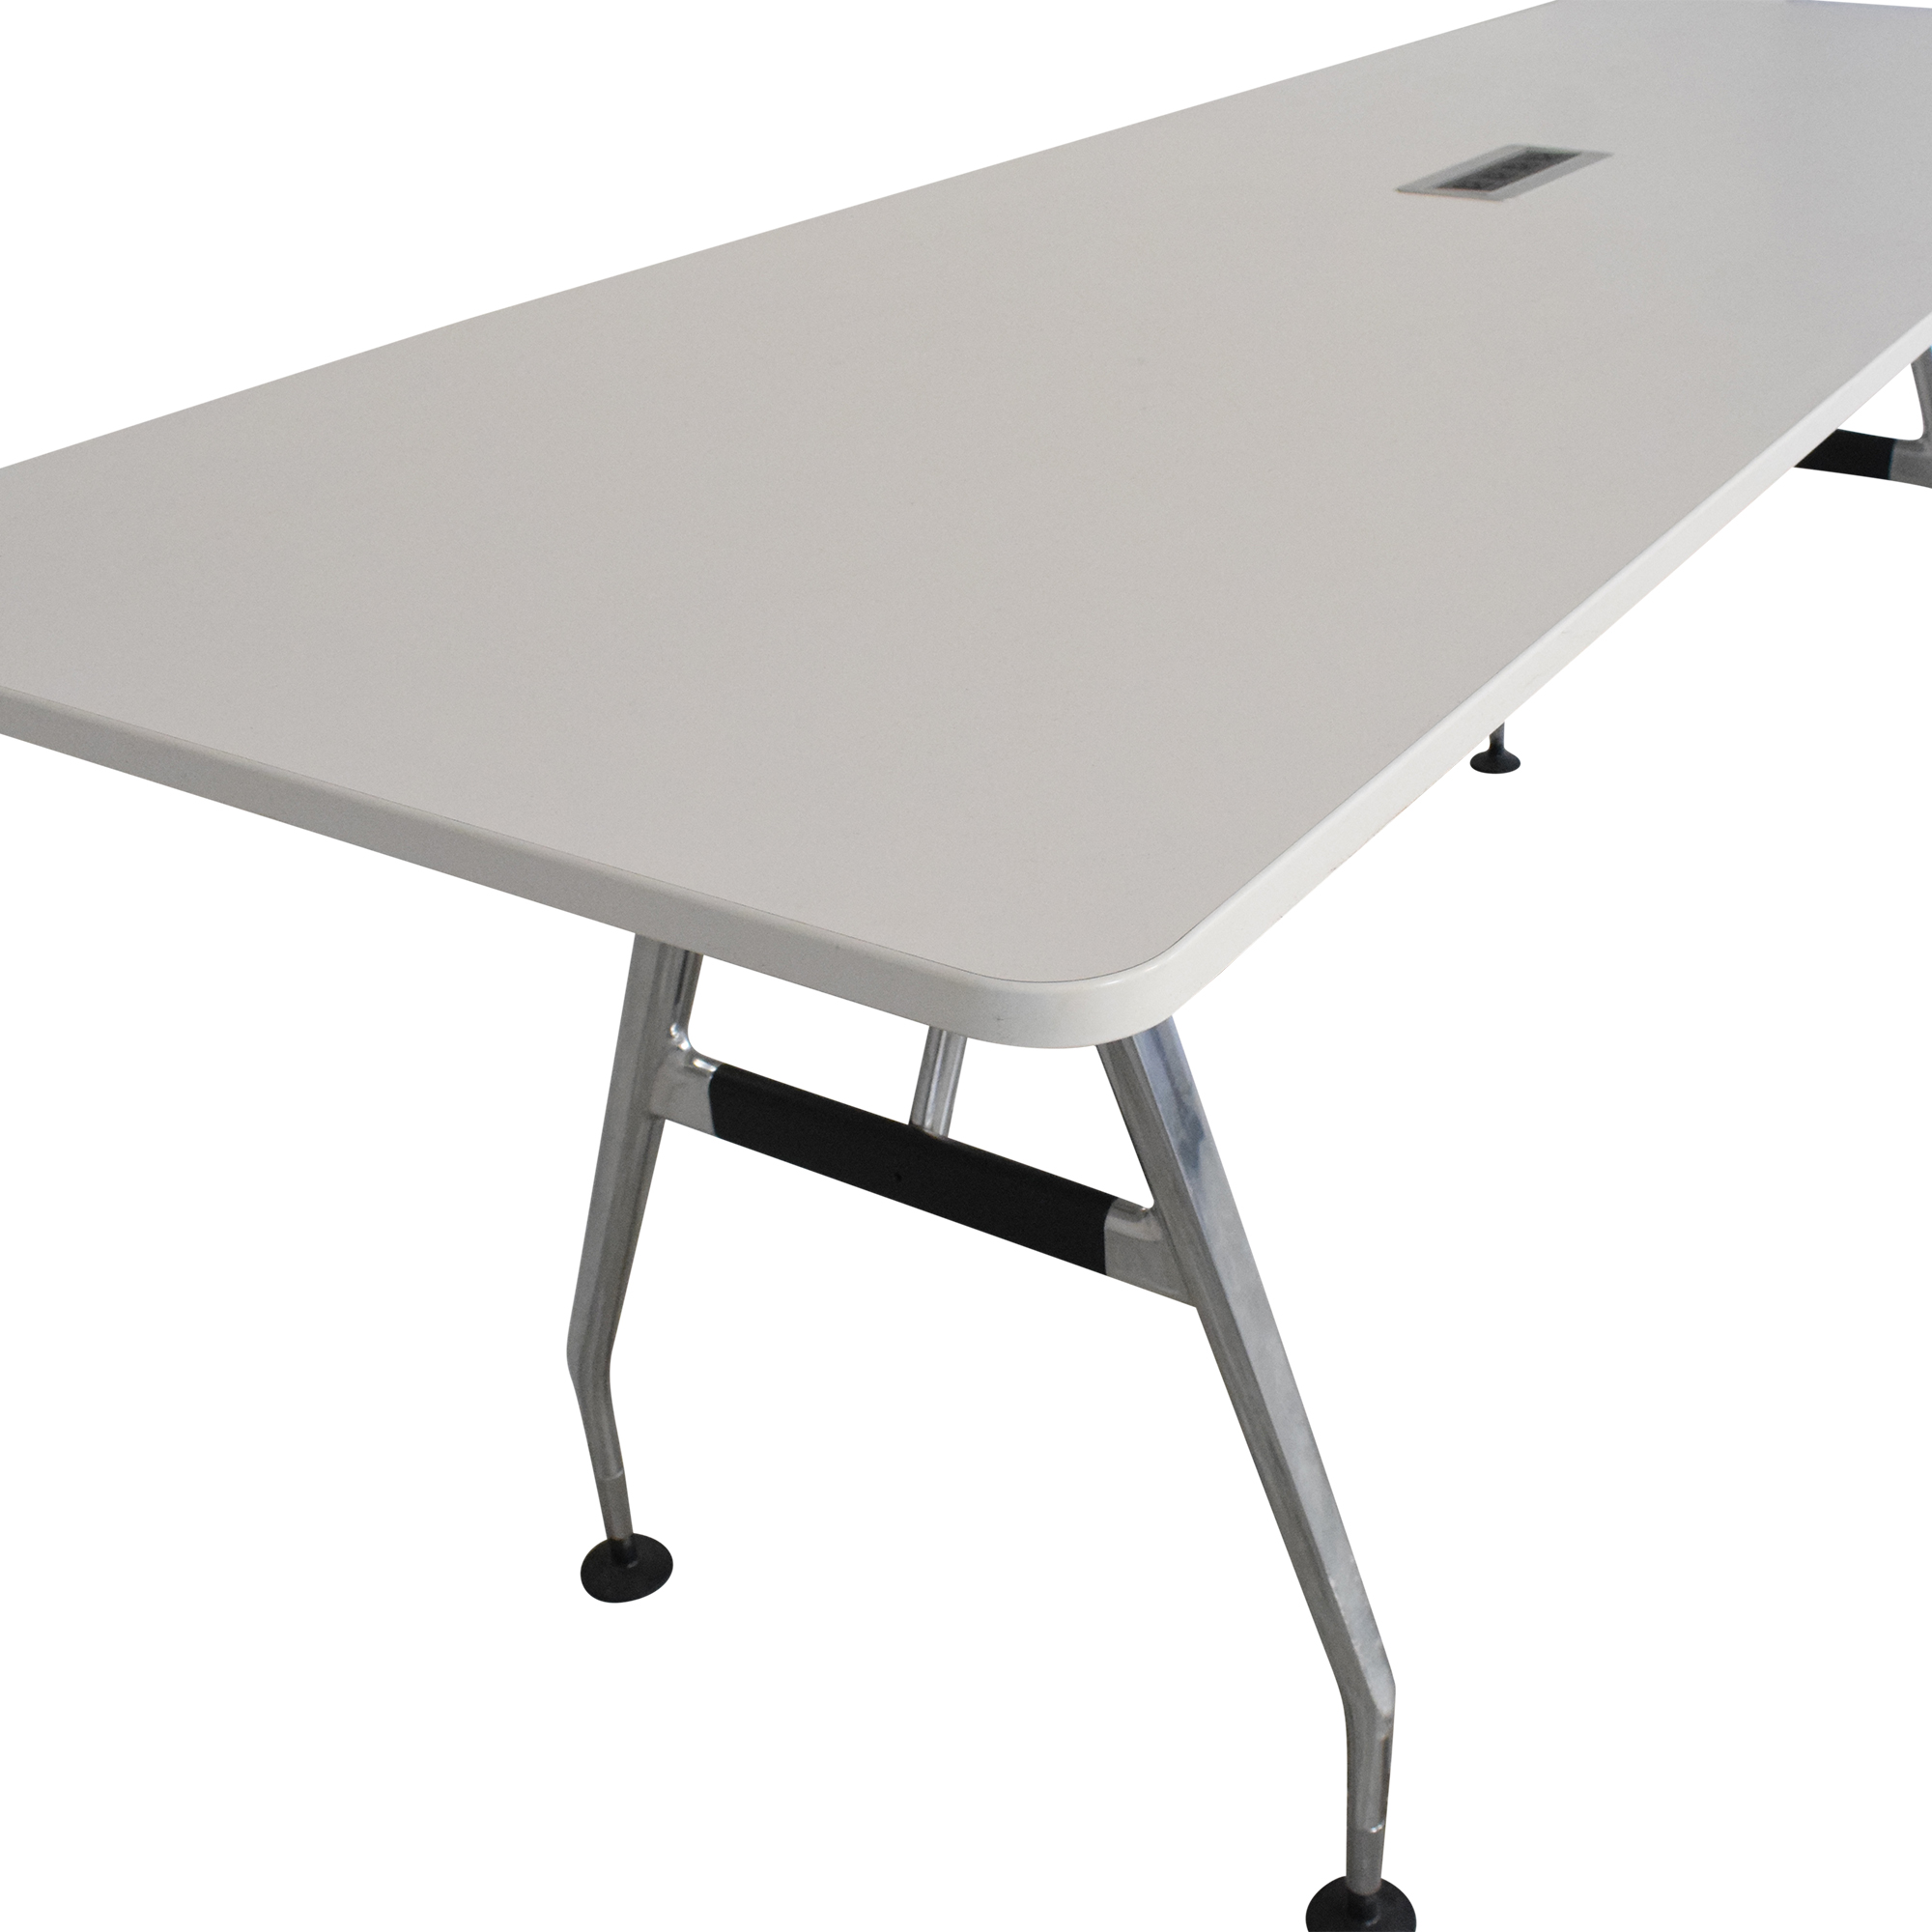 Vitra Vitra Ad Hoc Solitaire Meeting Table for sale